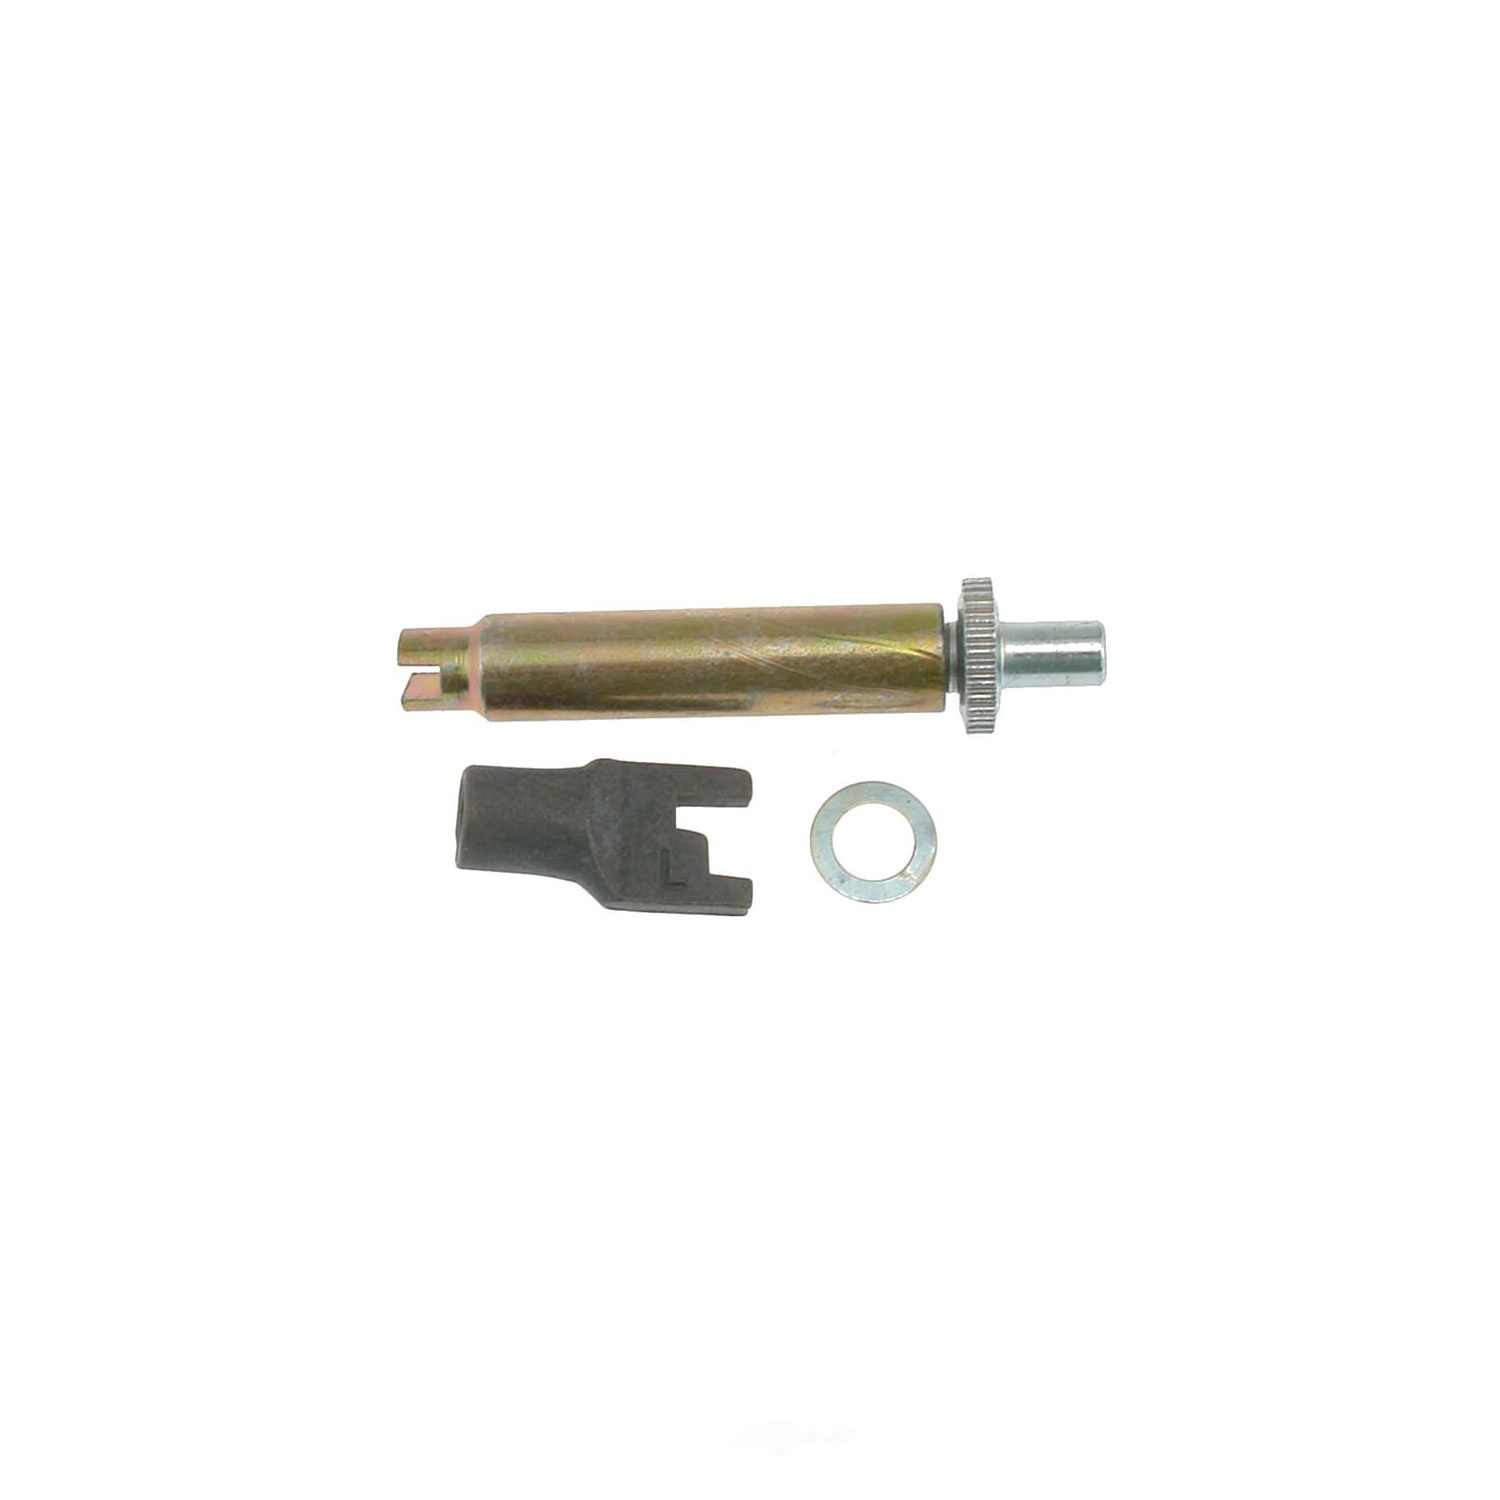 CARLSON QUALITY BRAKE PARTS - Drum Brake Adjusting Screw Assembly (Rear Right) - CRL H1555